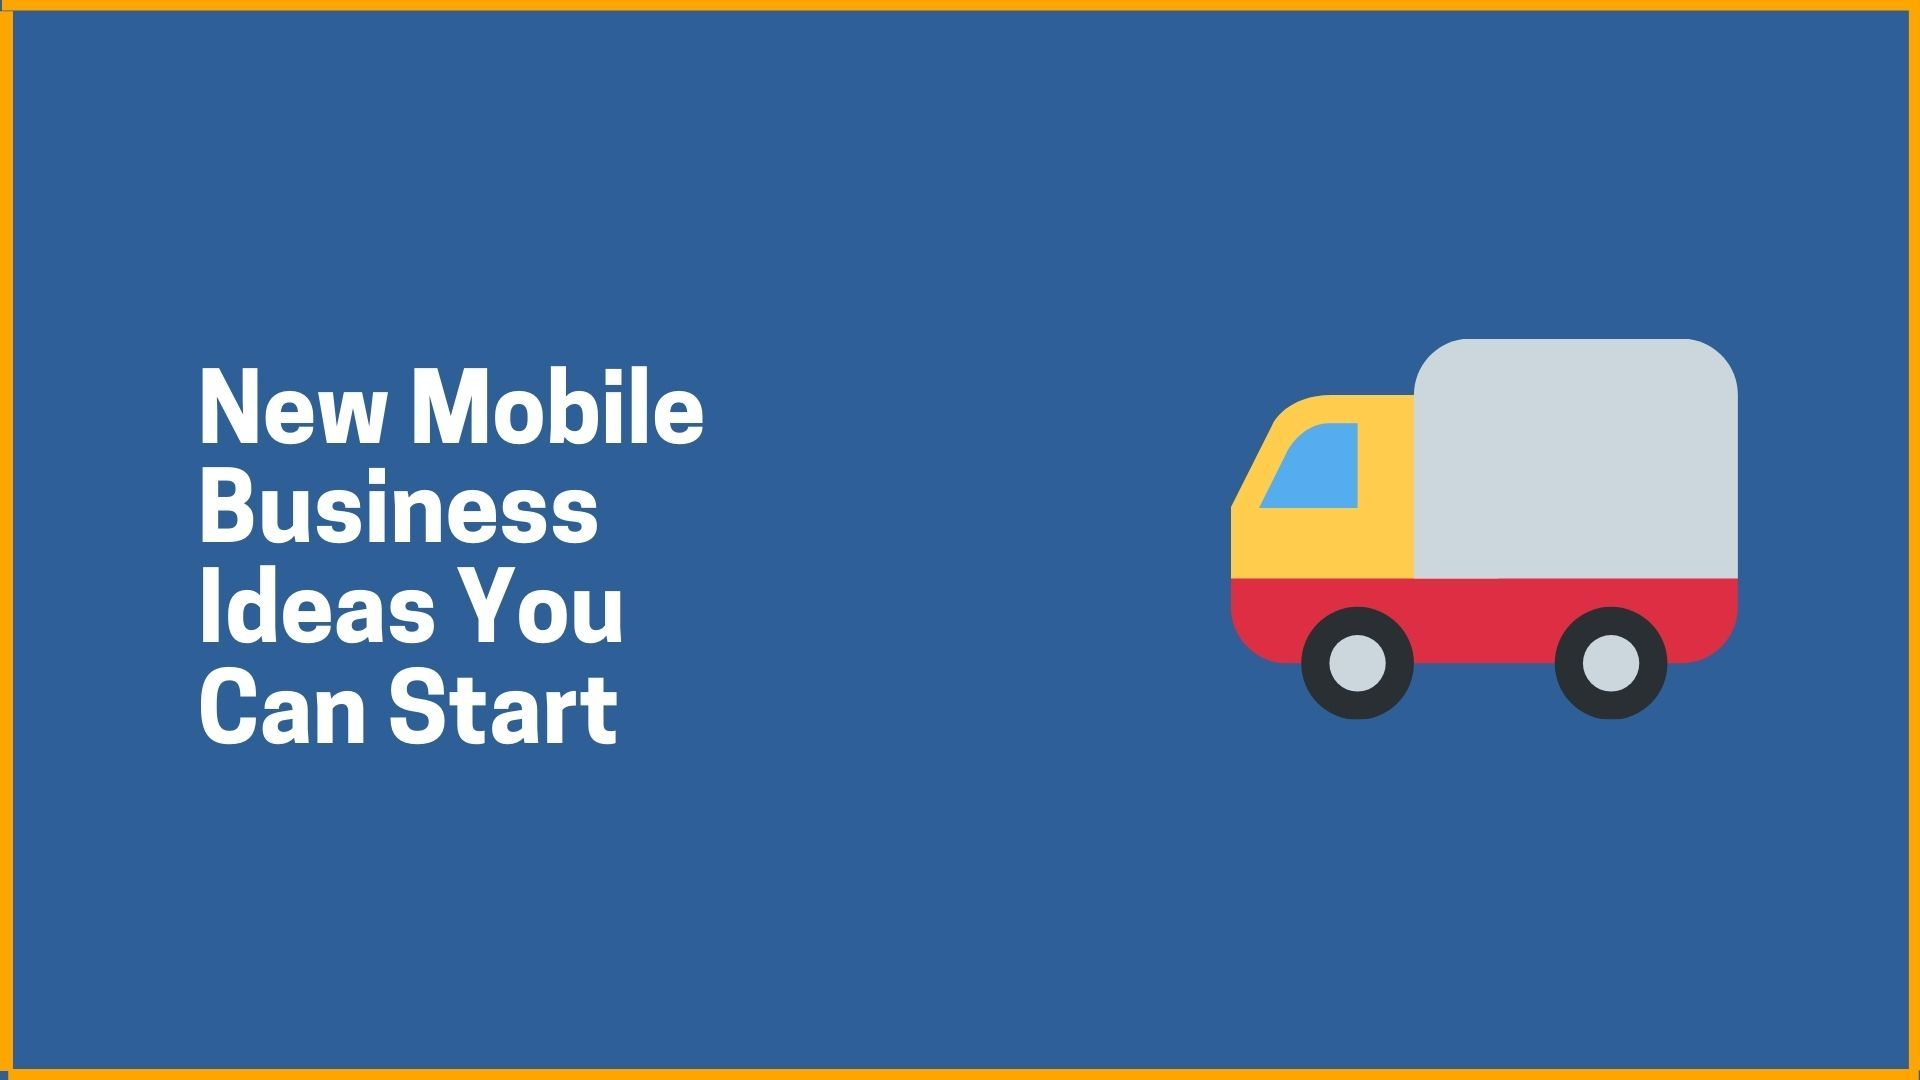 New Mobile Business Ideas You Can Start